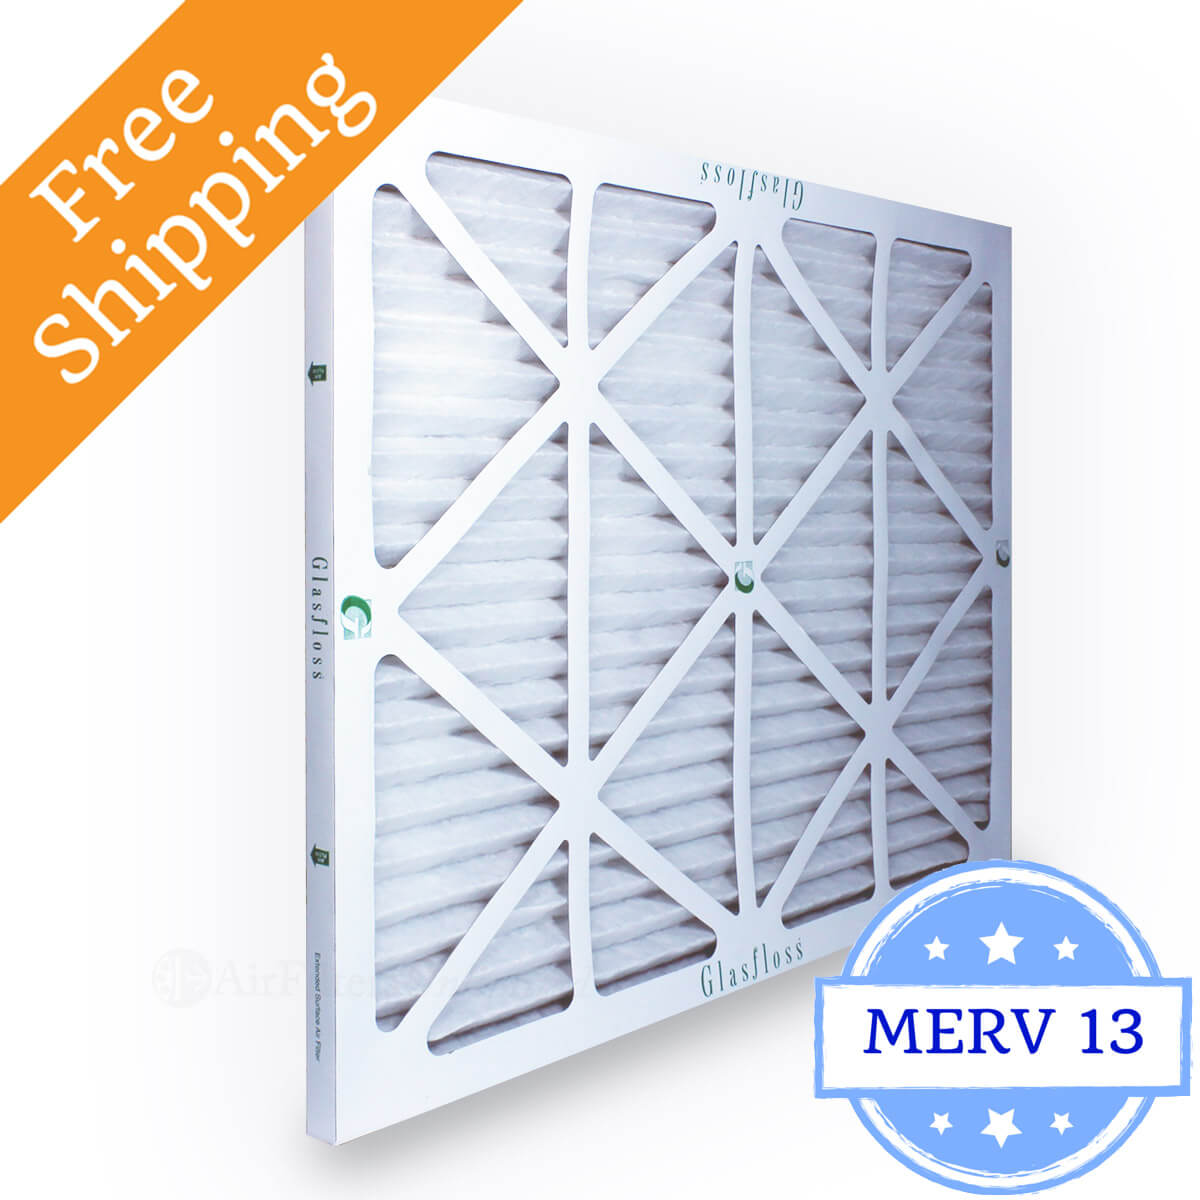 Glasfloss 14x20x1 Air Filter MR-13 Series